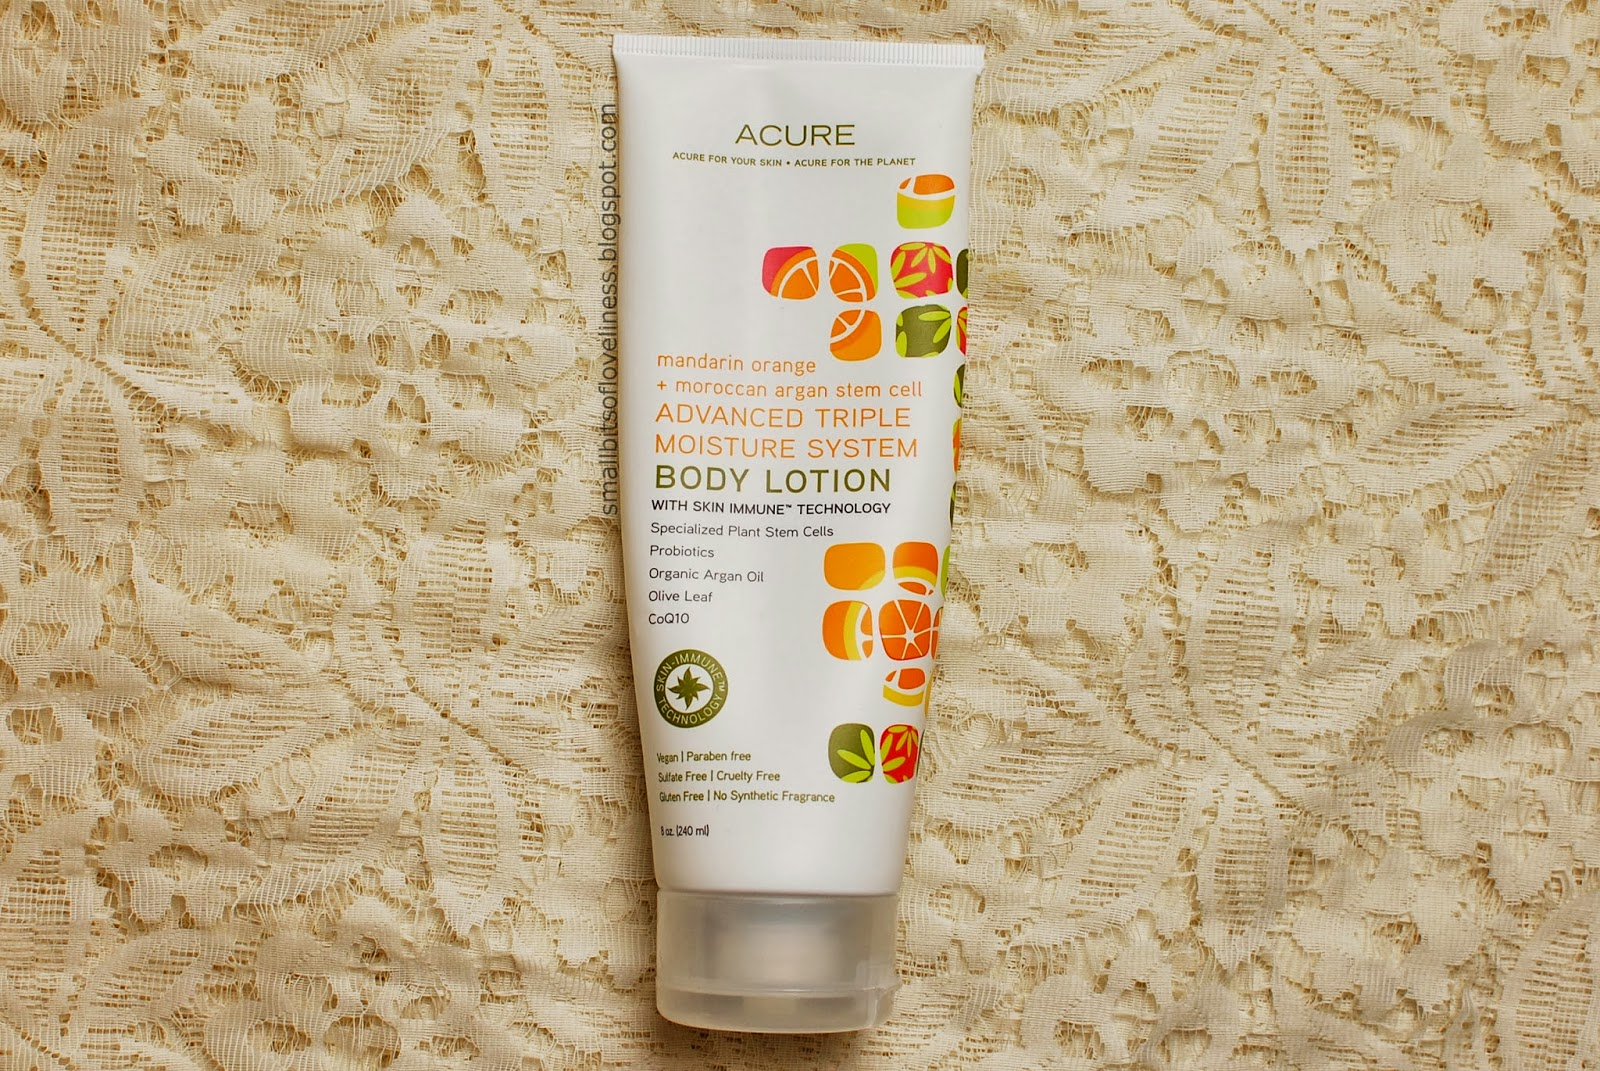 Acure Advanced Triple Moisture System Body Lotion Mandarin Orange